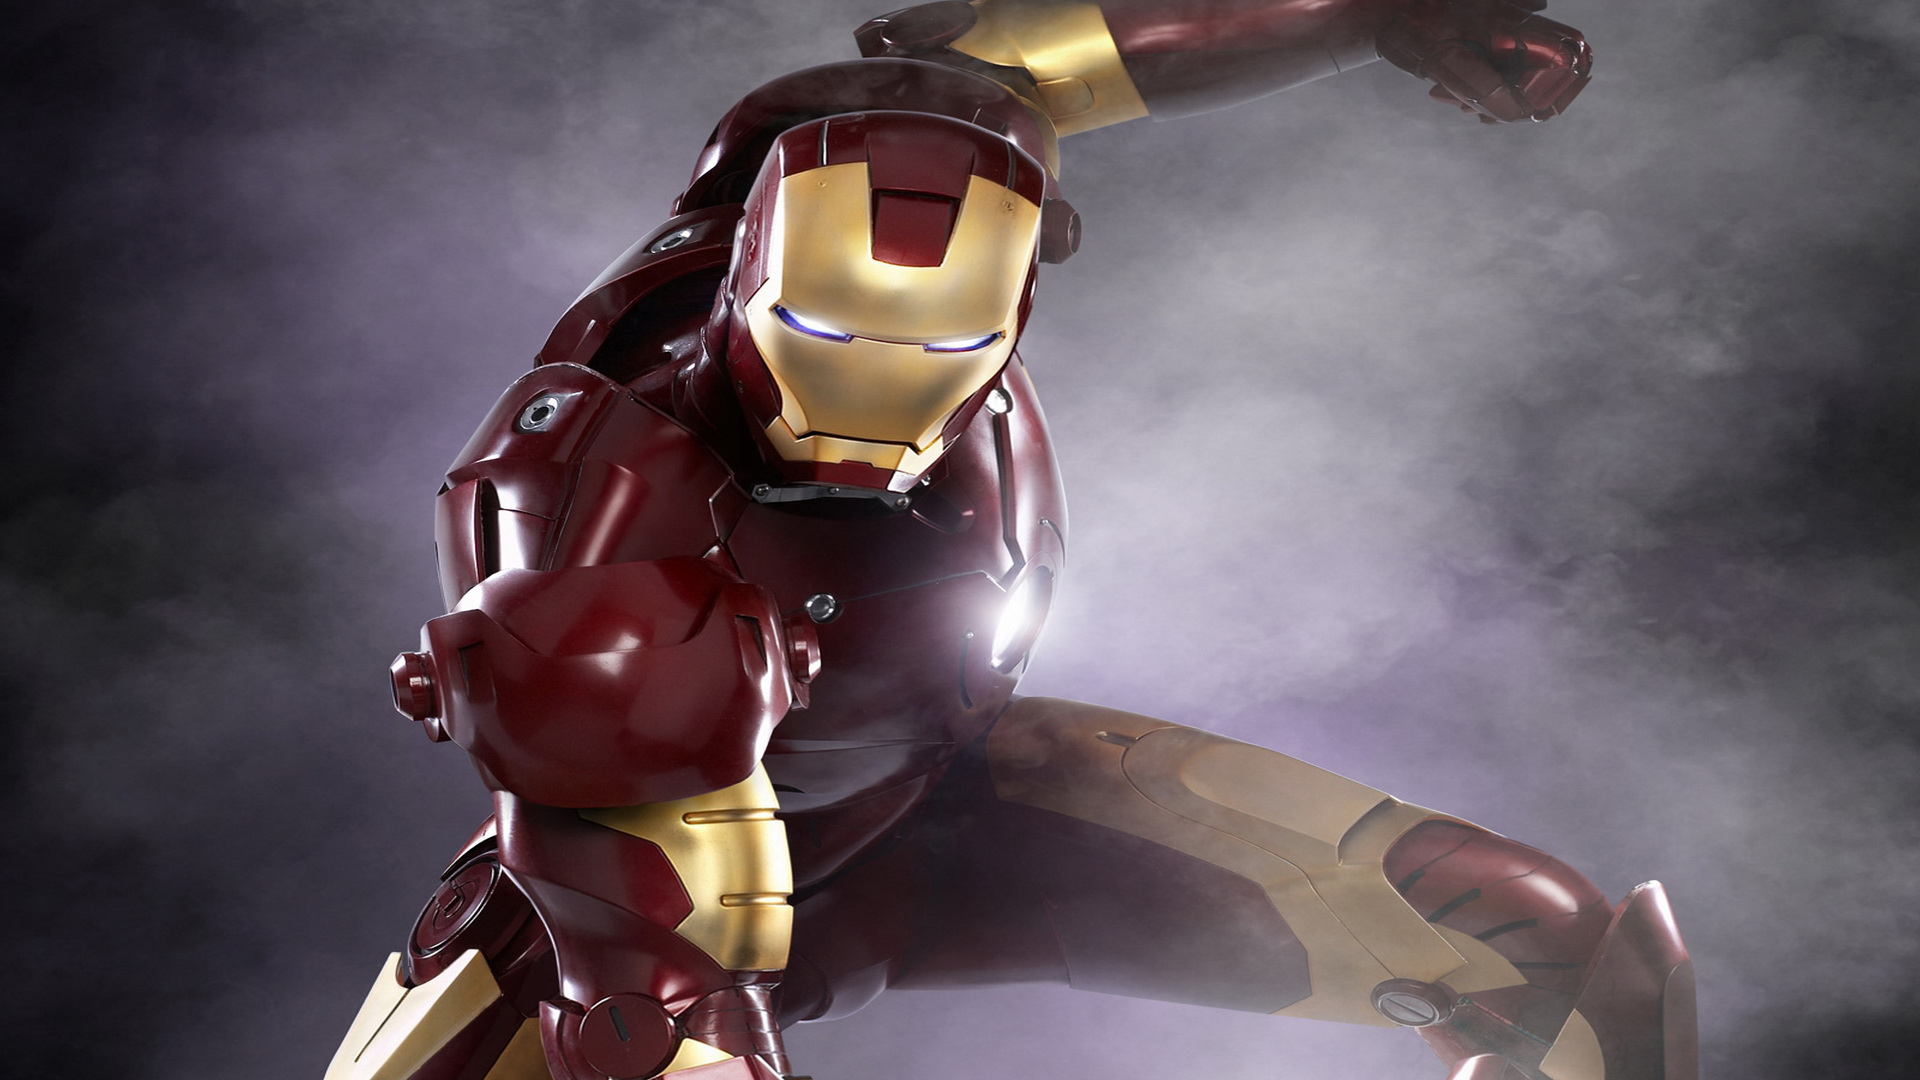 Iron man 3d wallpaper wallpapersafari - Iron man heart wallpaper ...